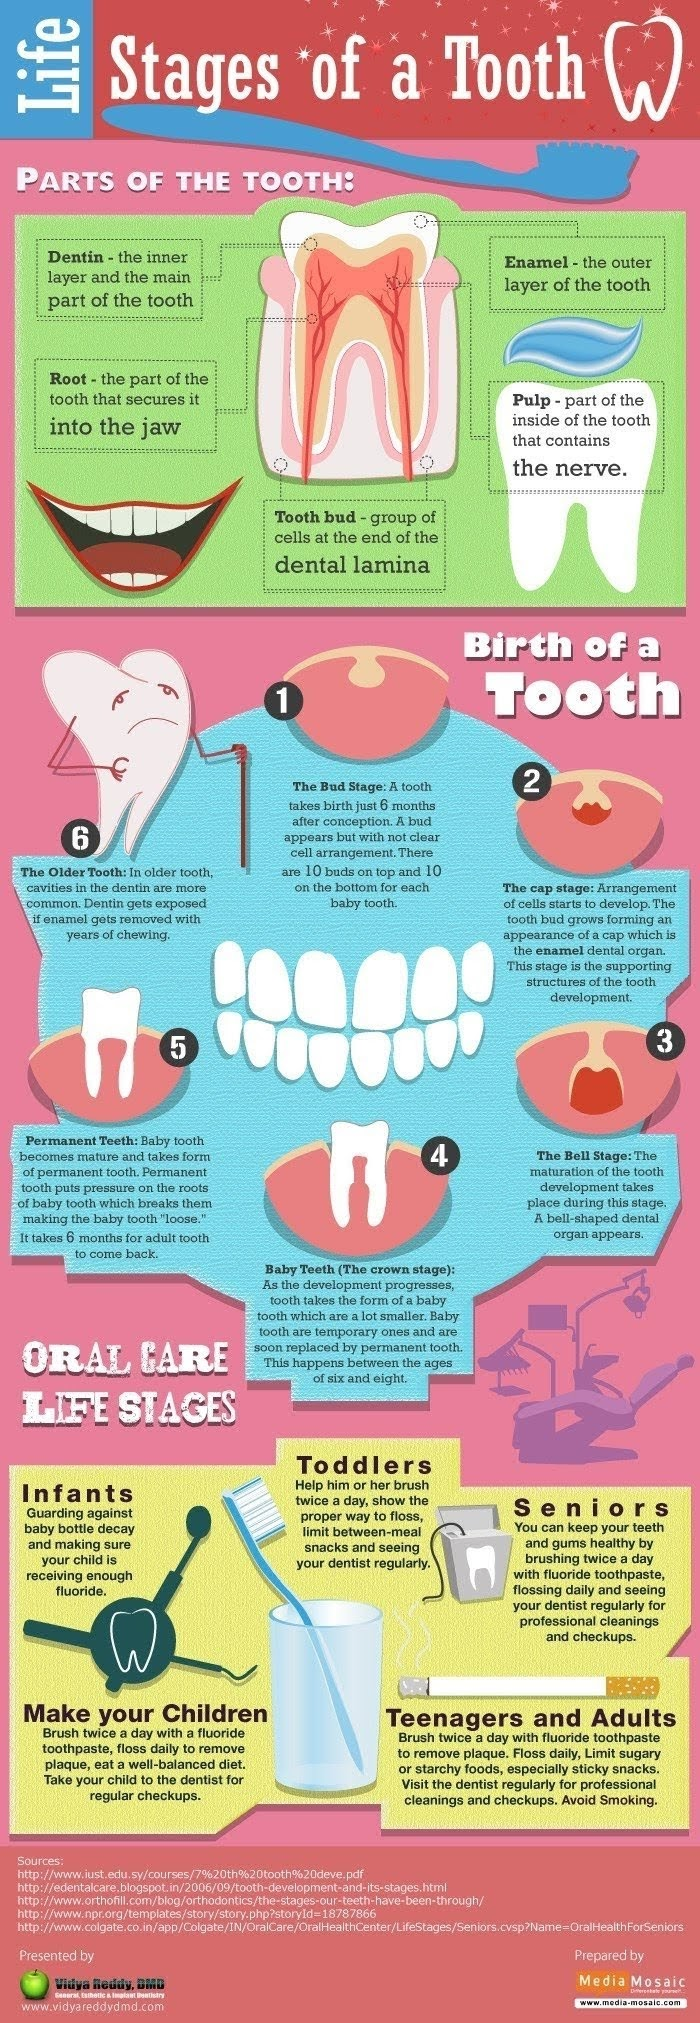 A Tooth Stage of Life #infographic